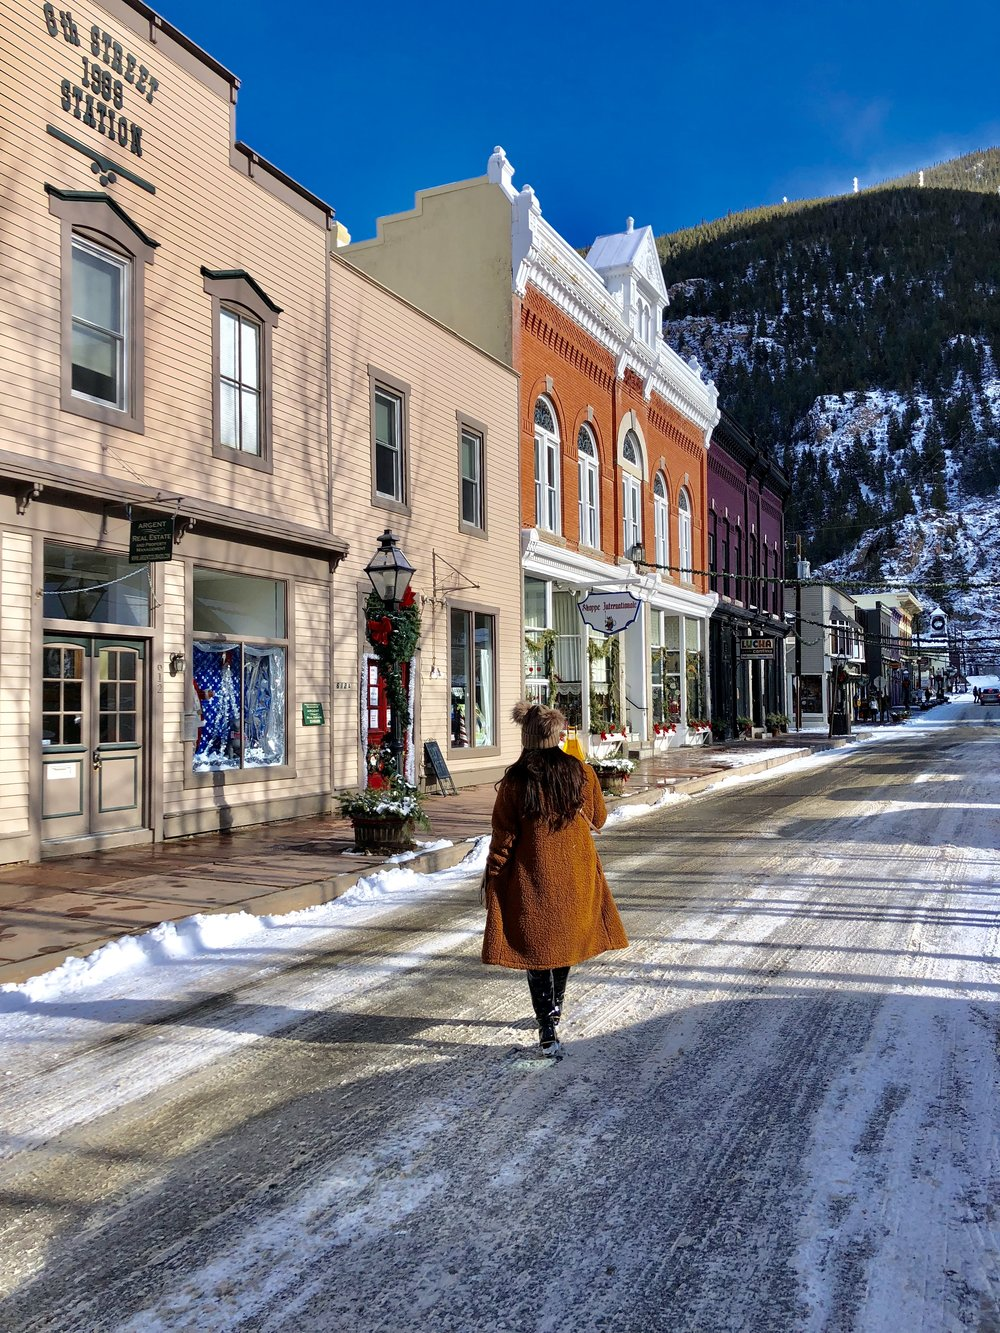 """GEORGETOWN - Georgetown had to be the cutest and the most scenic """"ghost"""" town throughout our Colorado trip. The historic mining town has charming quaint shops and restaurants while overlooking the mountain while walking through the historic village."""